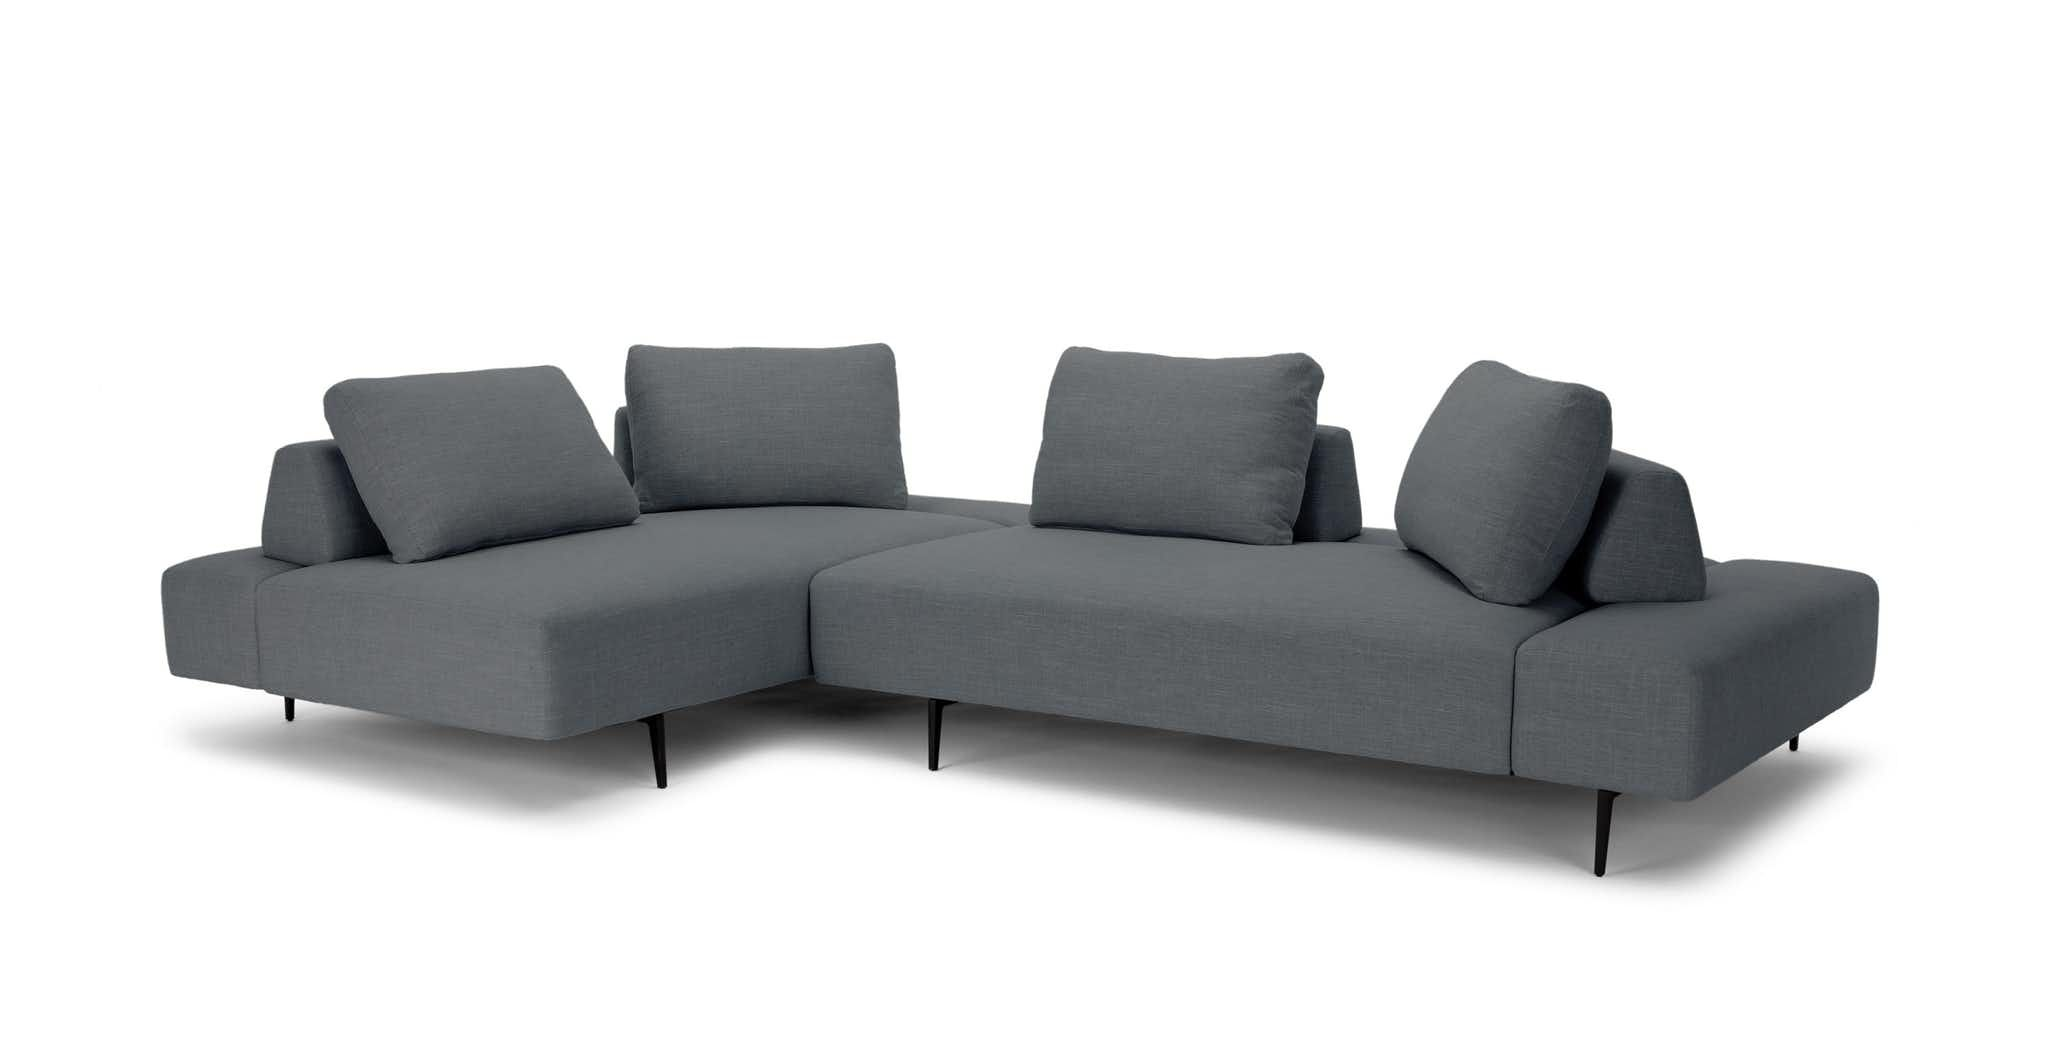 This Modern Lounging Sofa Is Designed For Flexible Lifestyles Low Chunky Seats Are Perched